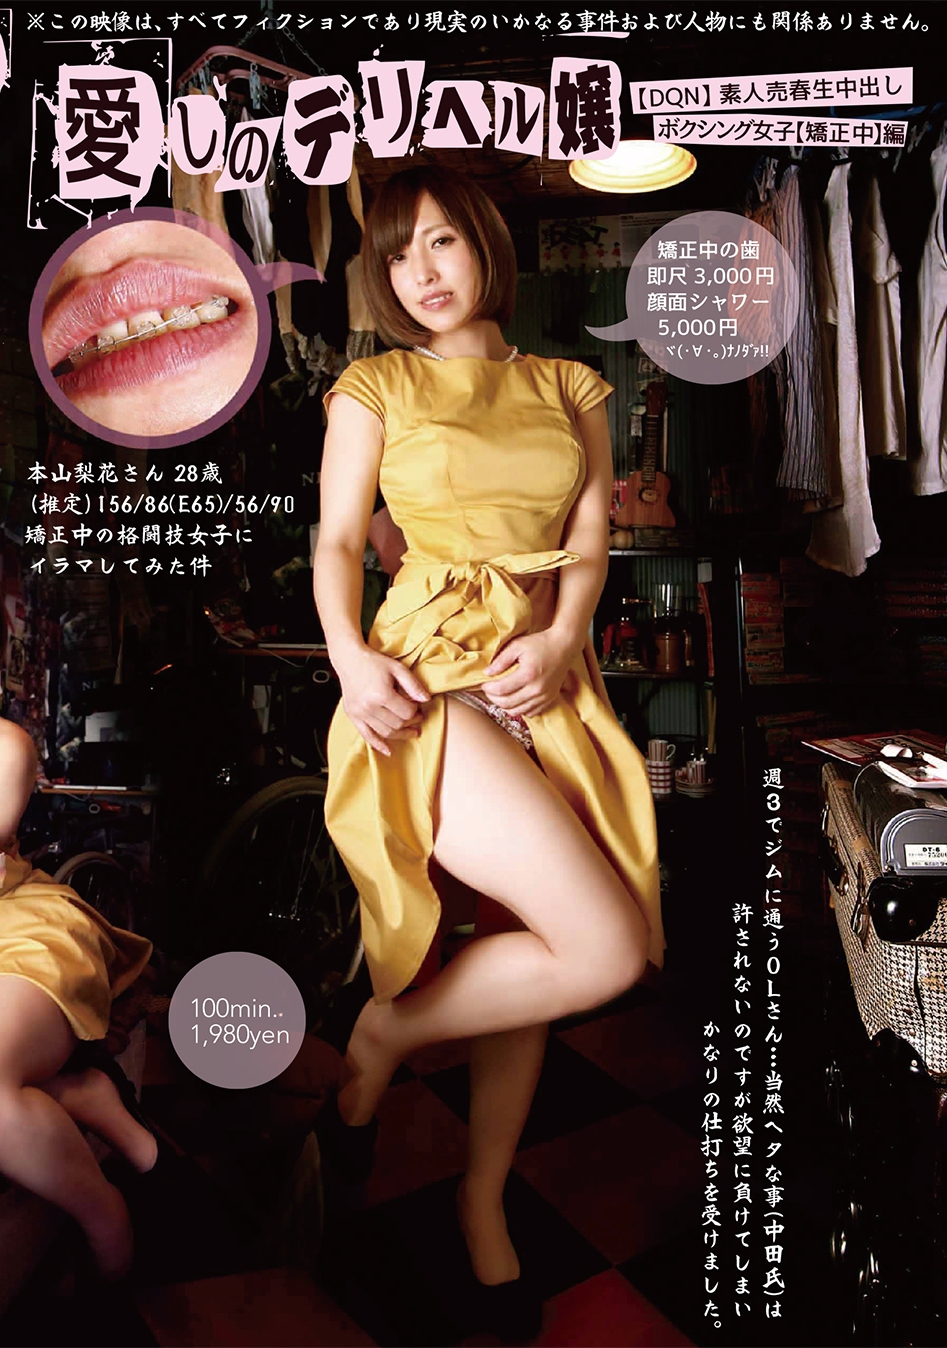 A Lovely Delivery Health Lady (Delinquent) Amateur Prostitution Bareback Cream Pie? A Boxing Girl Edition, Marika Motoya 28 Years Old